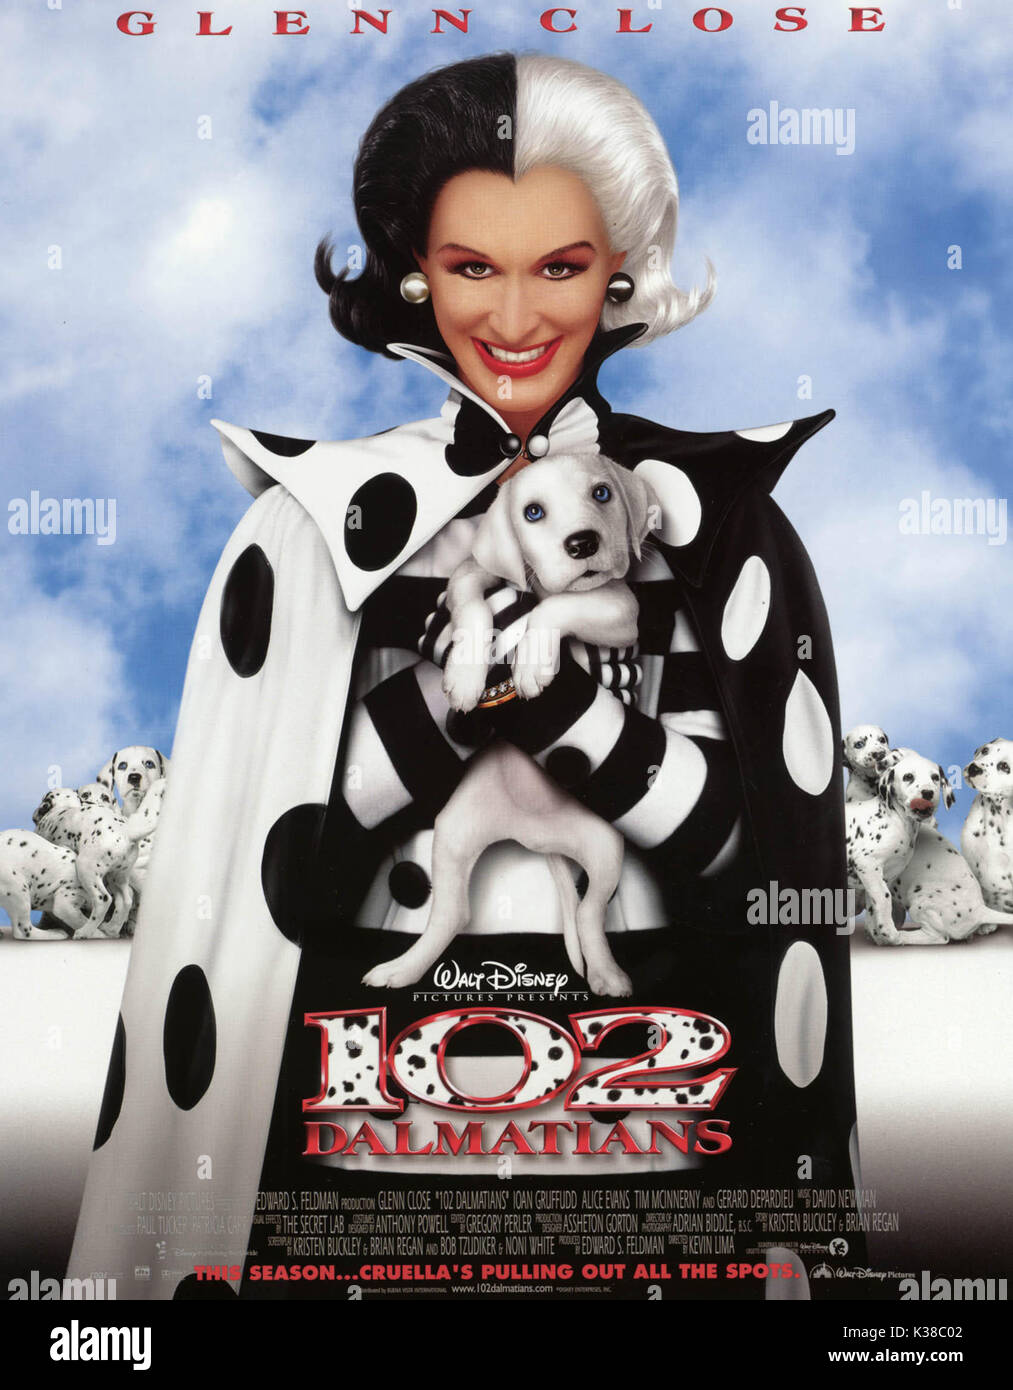 102-dalmatians-glenn-close-as-cruella-de